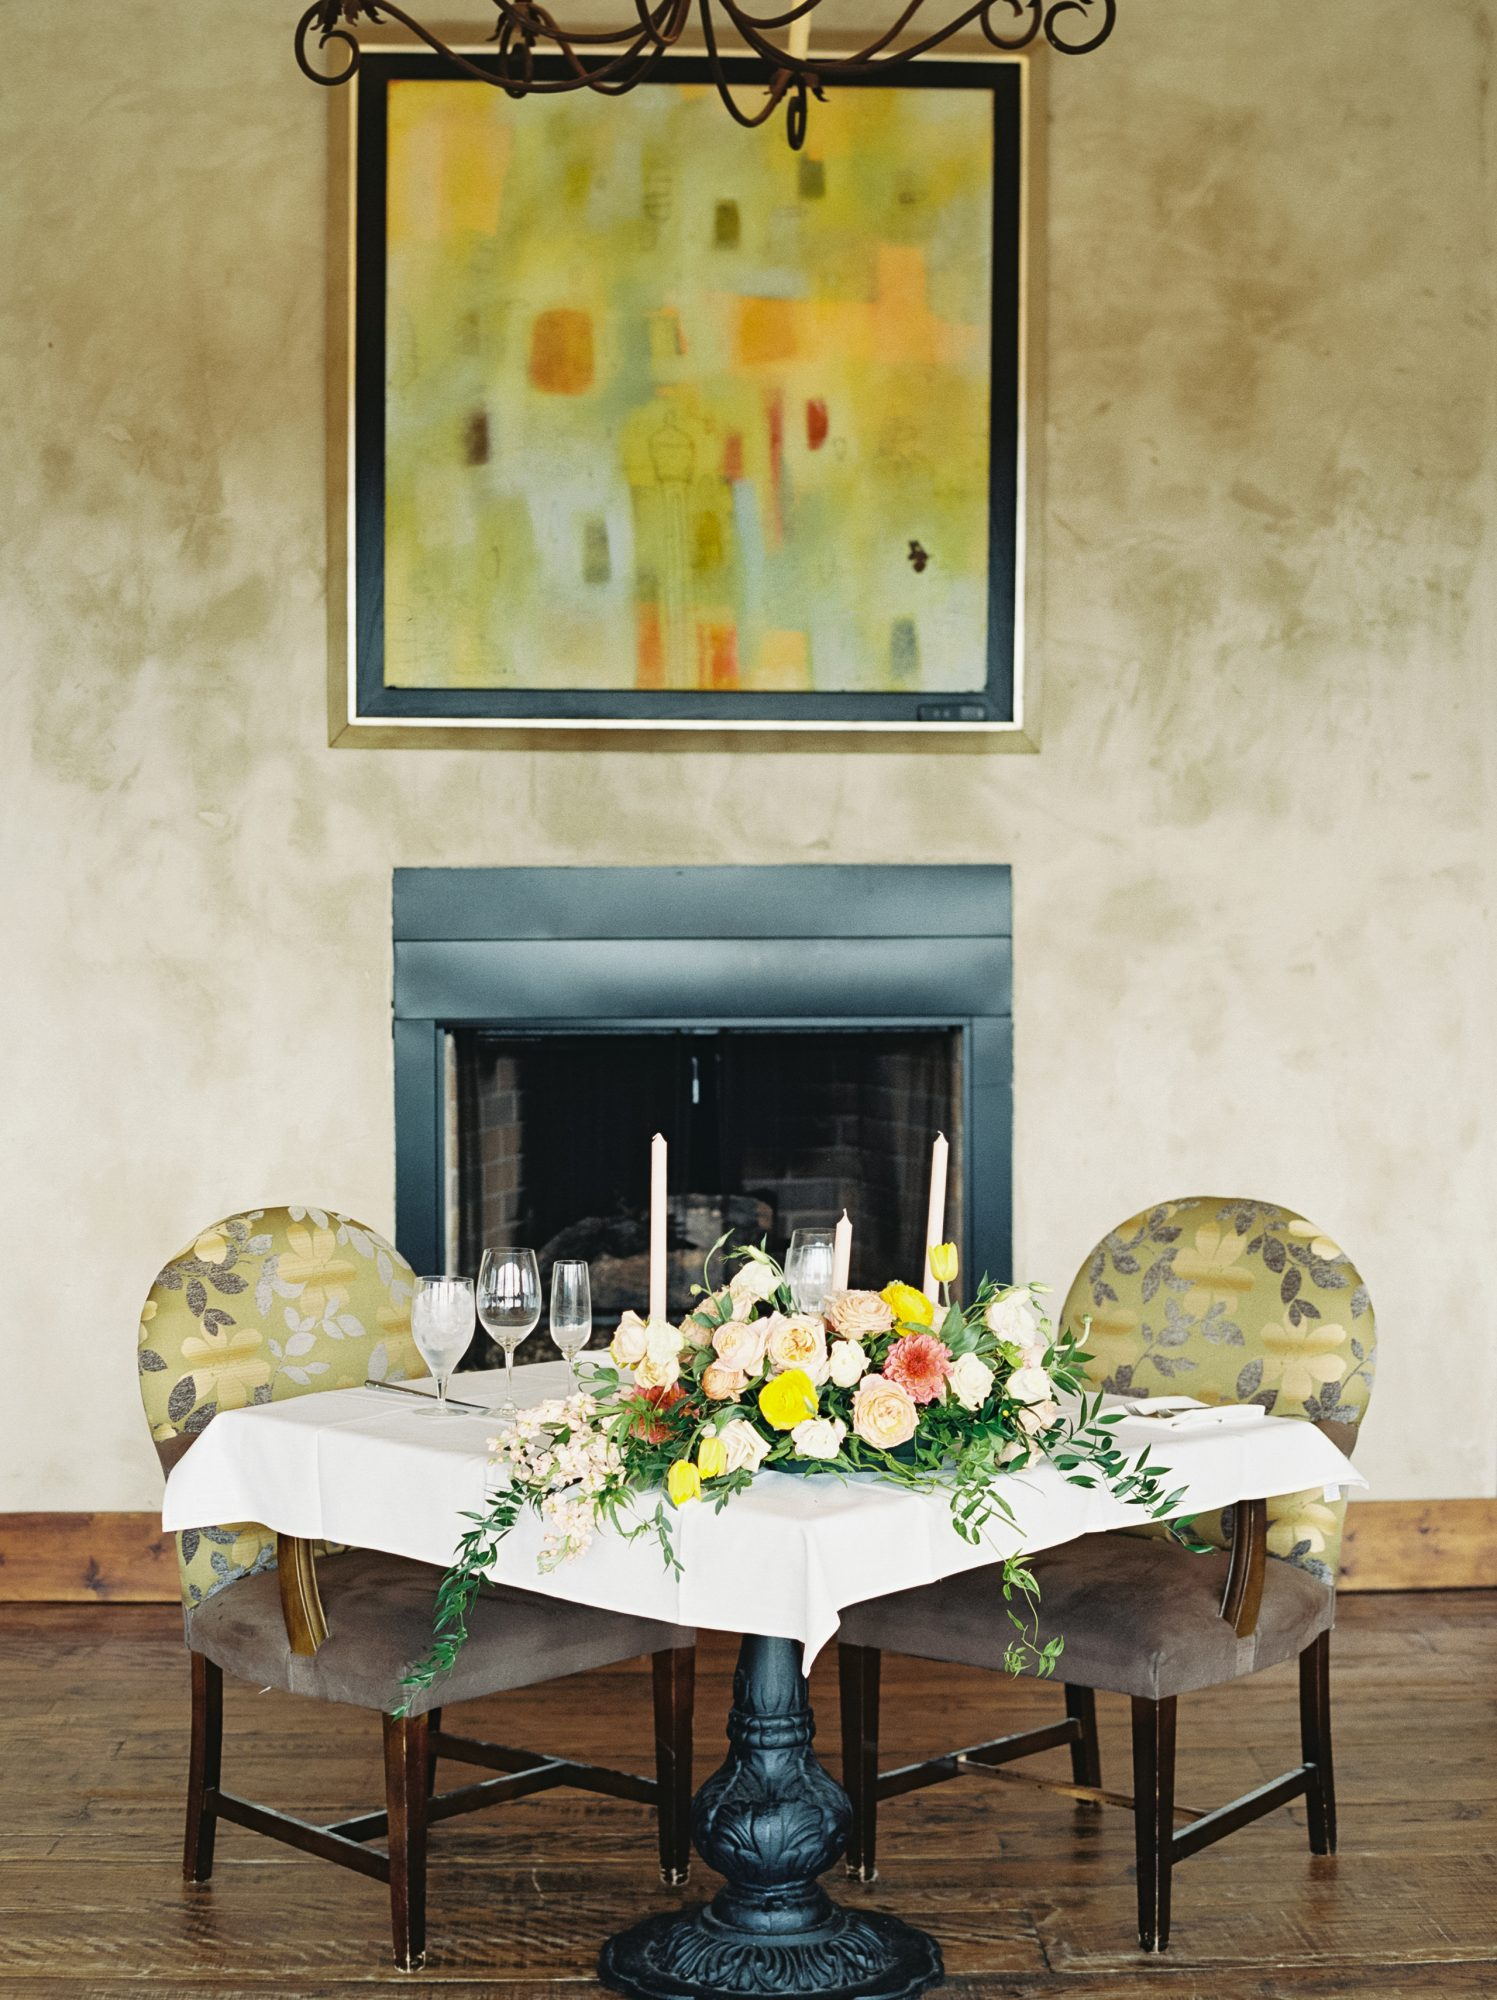 cayla david wedding reception table with colorful floral centerpiece